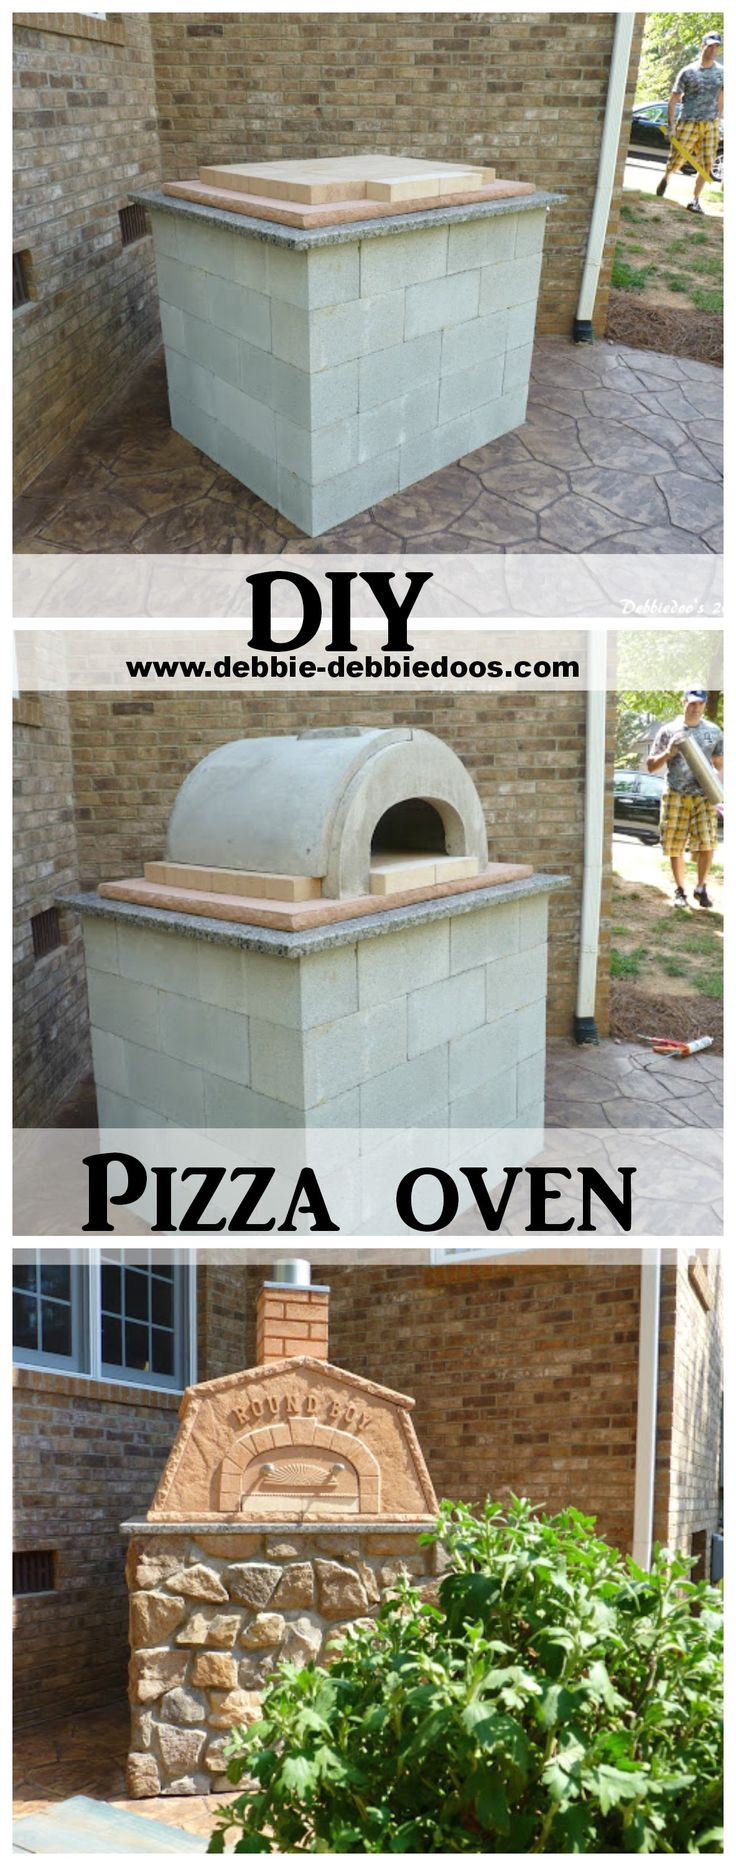 Make your own outdoor pizza oven! DIY pizza oven tutorial! #Diy #pizzaoven #roundboy